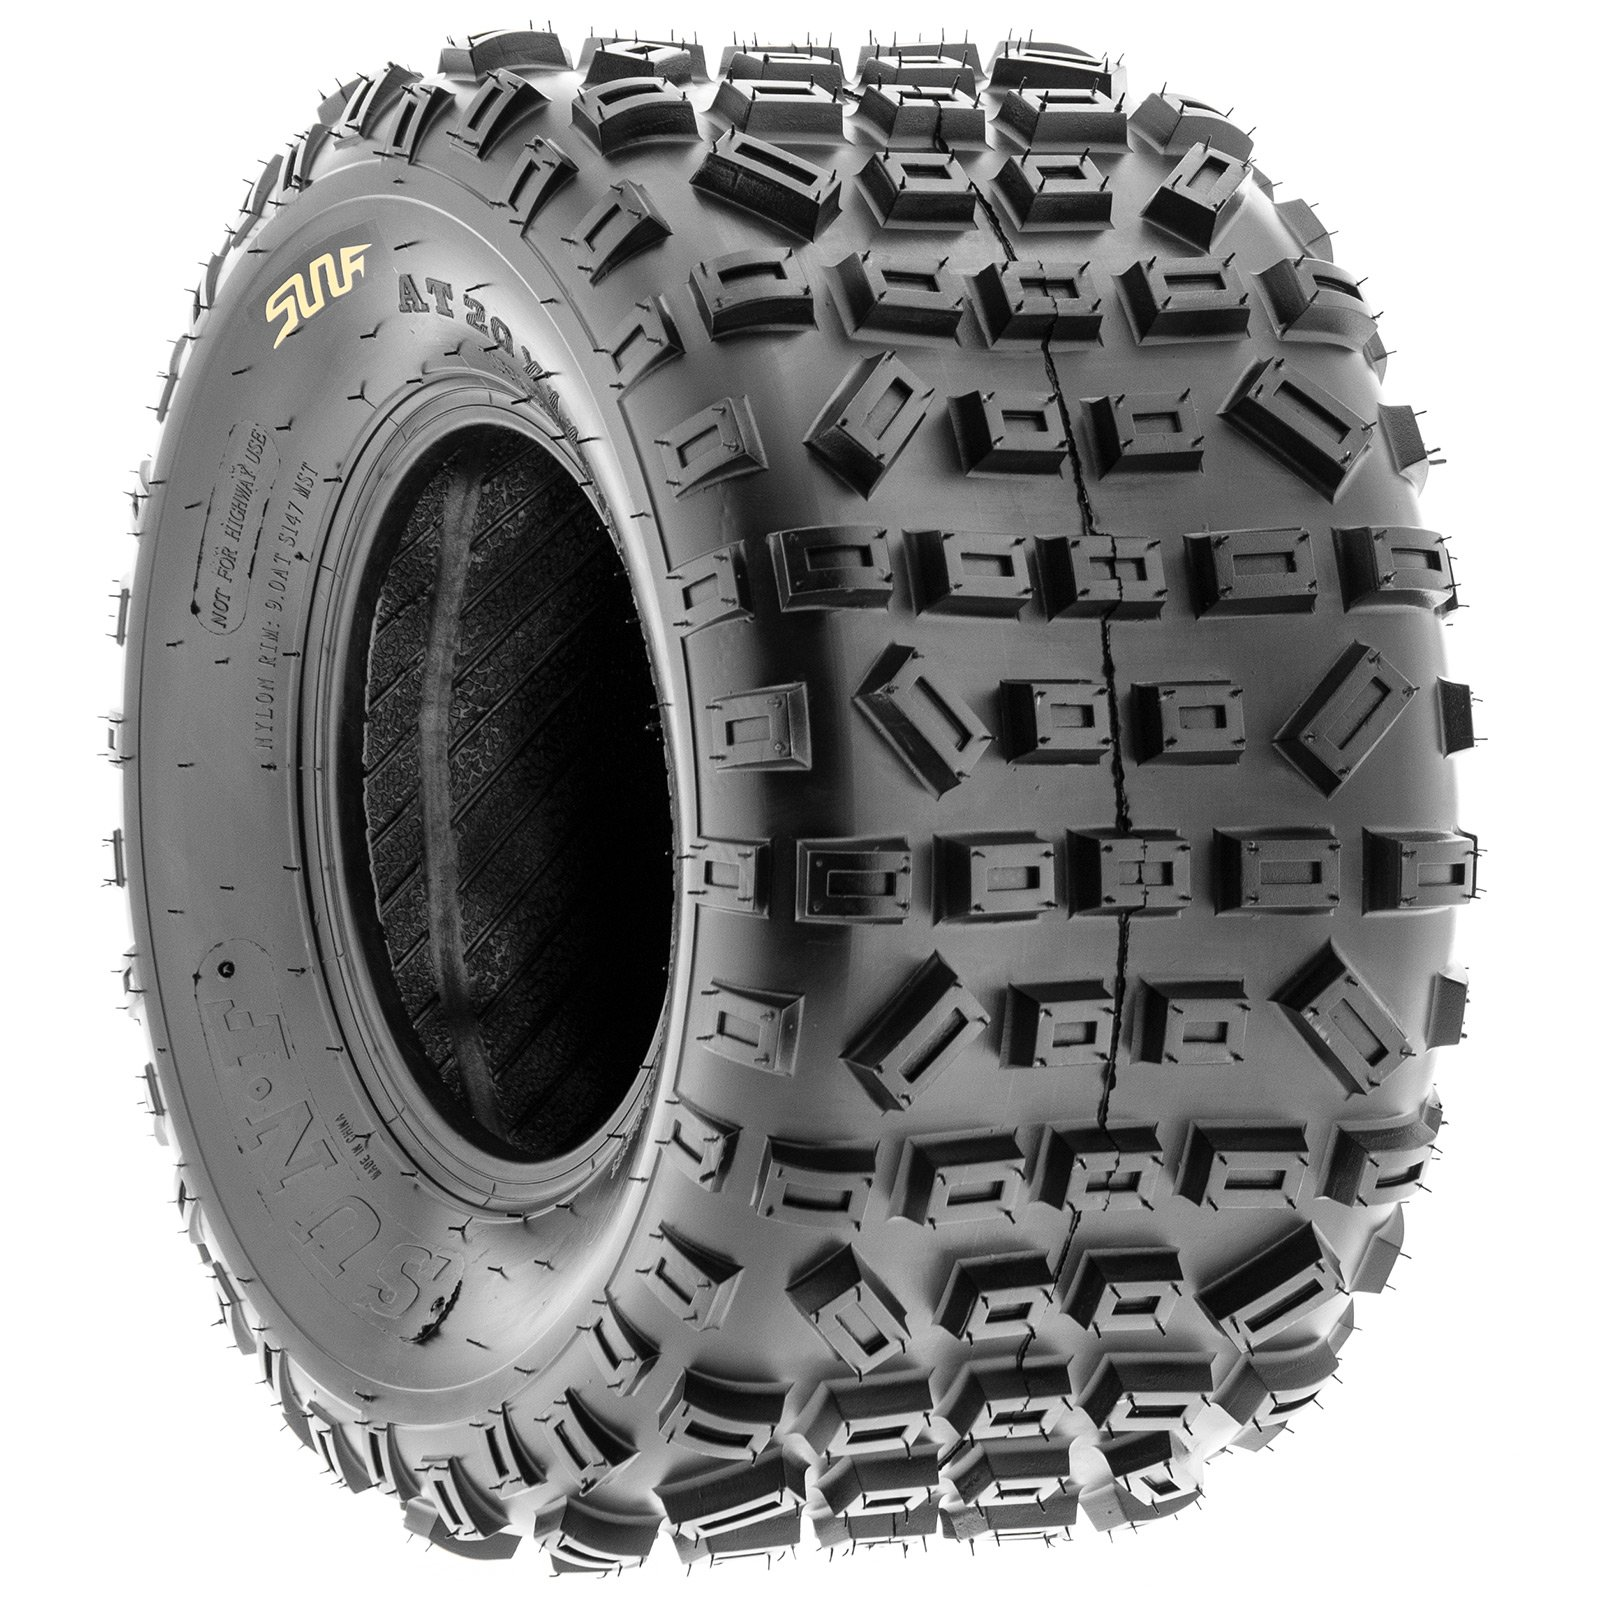 SunF Knobby XC MX ATV Tires 21x6-10 & 20x11-9 6 PR A035 (Full set of 4, Front & Rear) by SunF (Image #8)